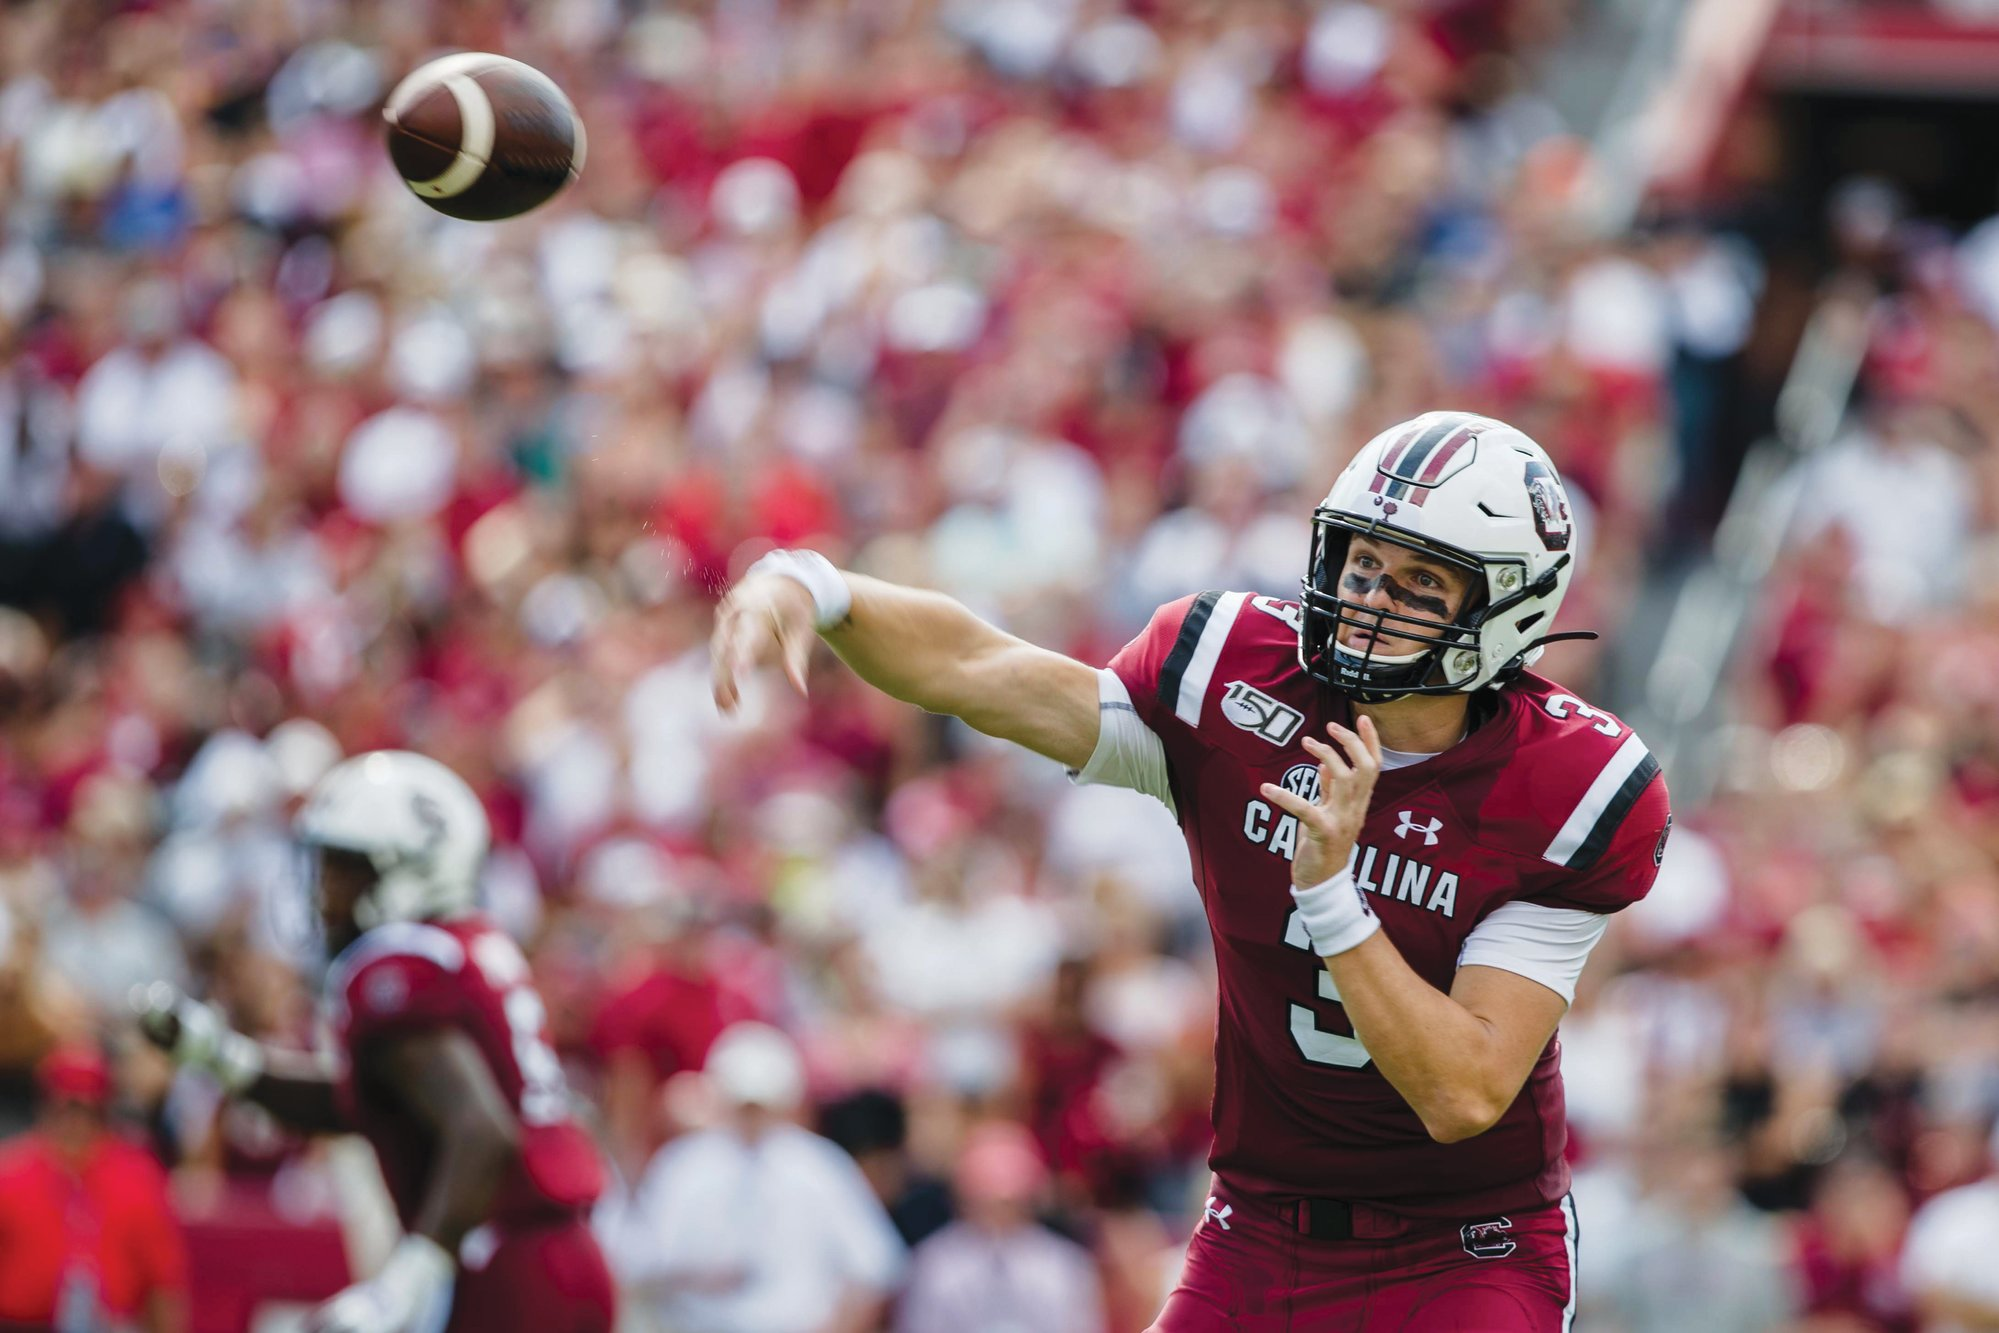 South Carolina's returning starting quarterback Ryan Hilinski (3) is still fighting for his job against transfer quarterback Collin Hill and freshman Luke Doty.